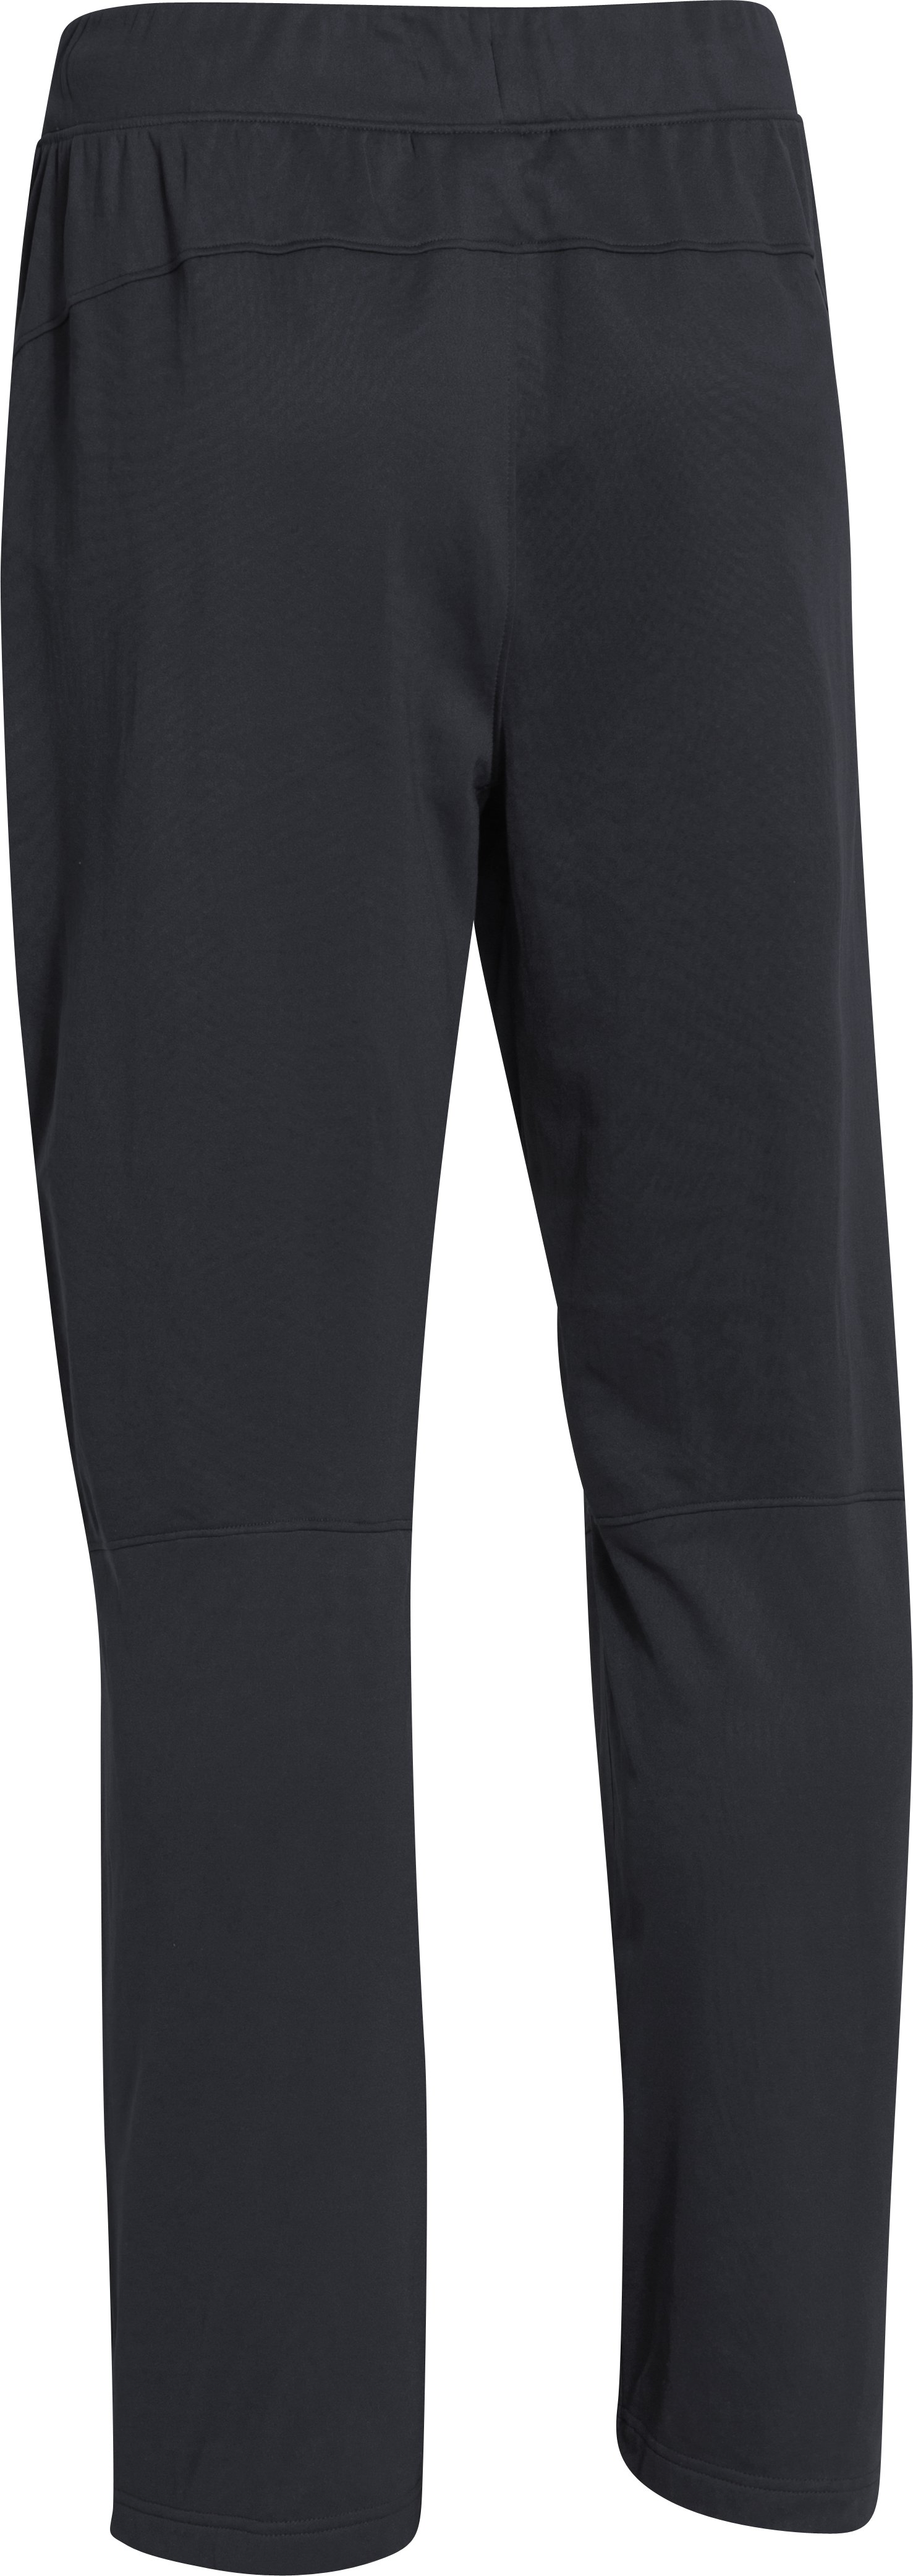 Men's NFL Combine Authentic ColdGear® Infrared Warm-Up Pants, Black